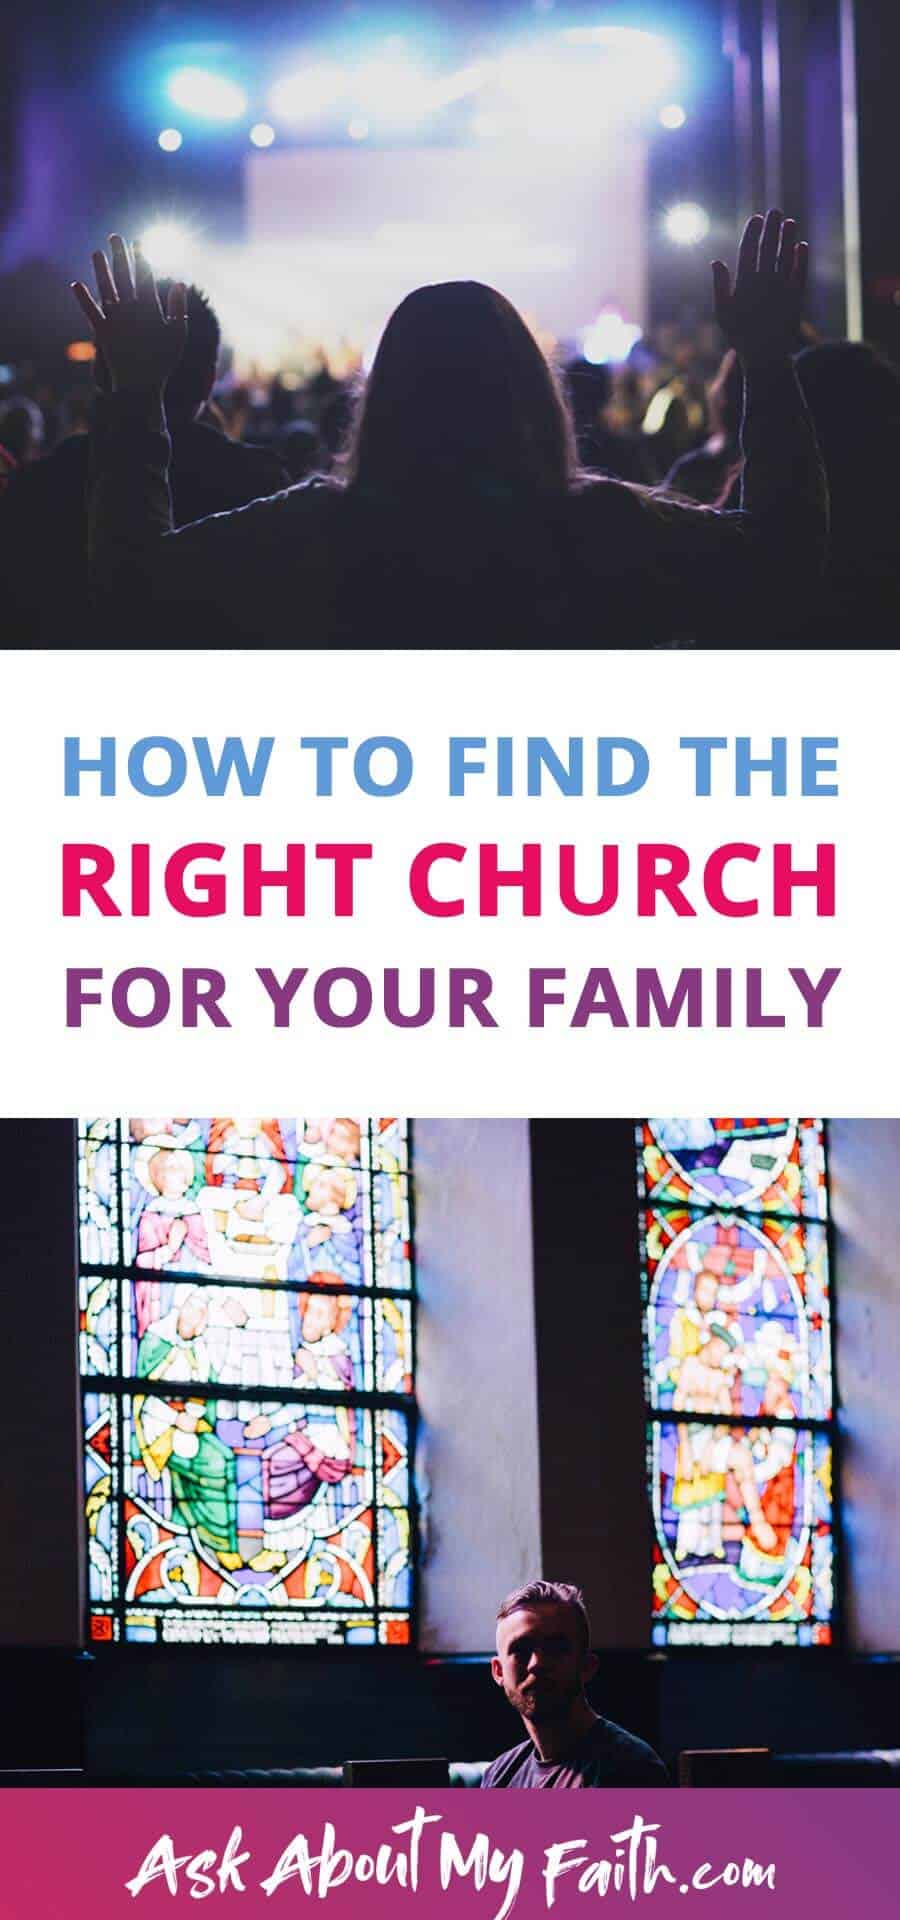 How to Find a Church that Works for You